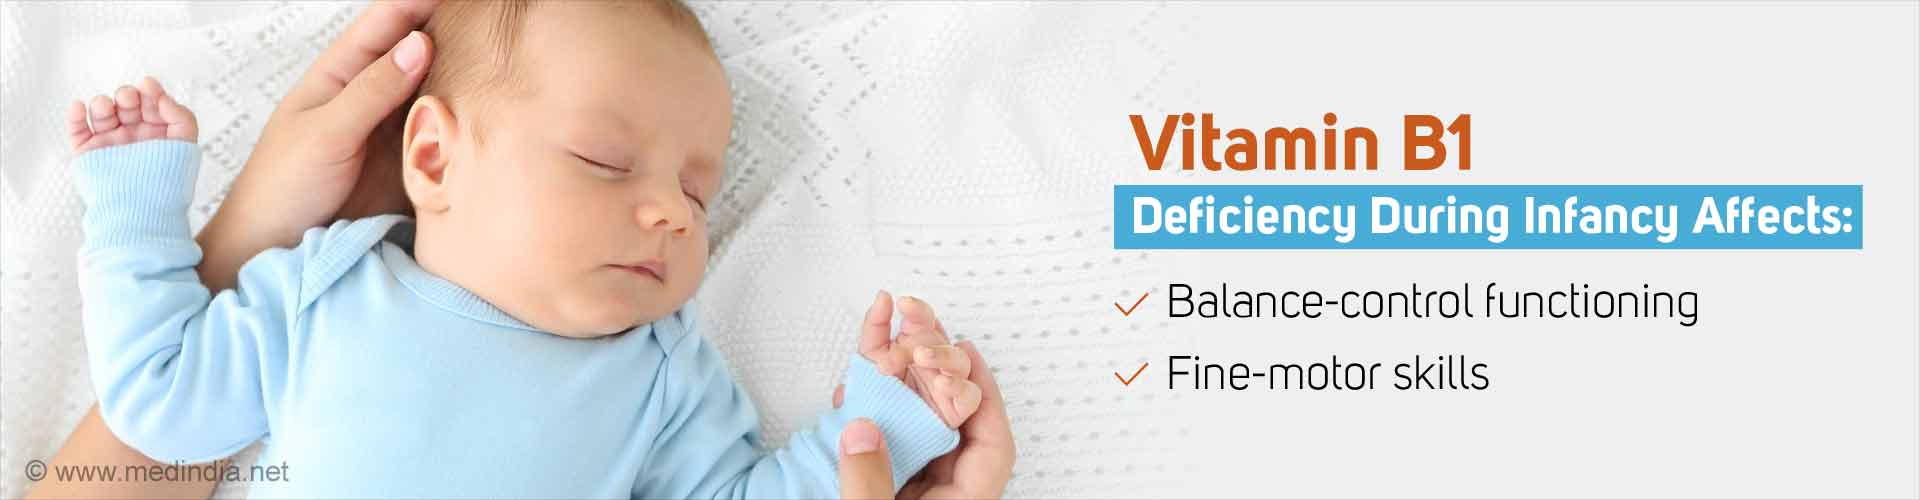 Vitamin B1 Deficiency in Infancy Affects Childhood Motor Function